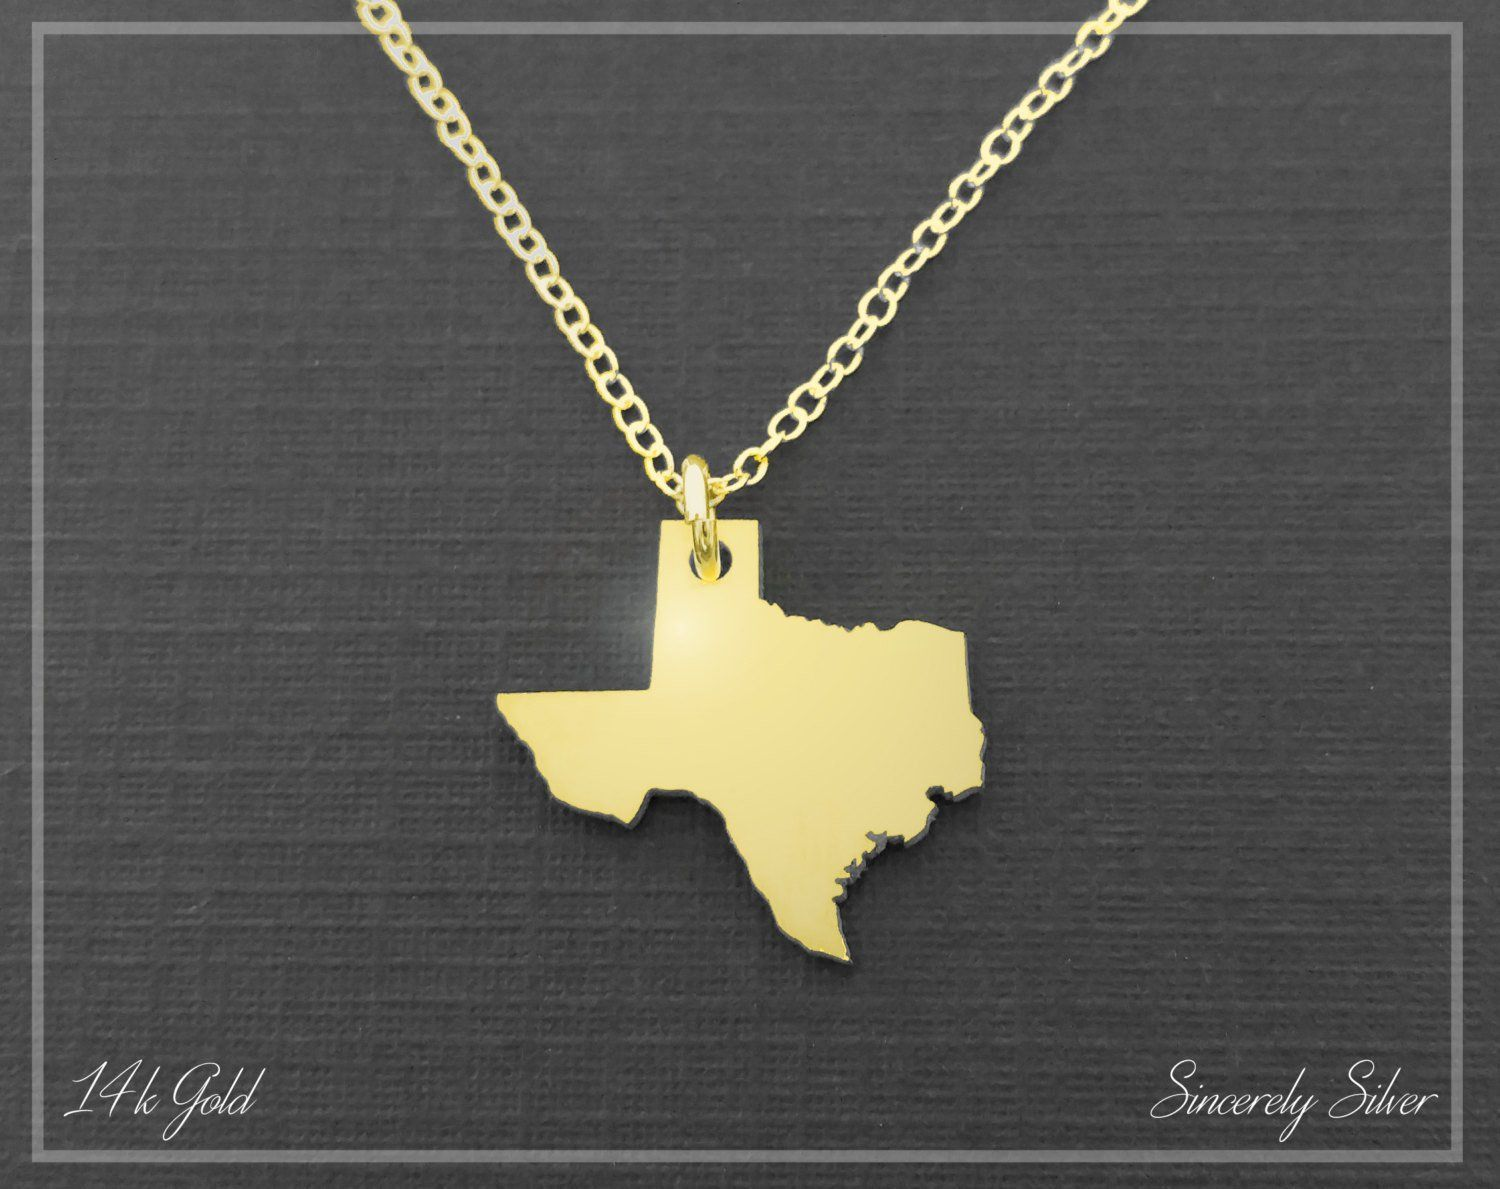 14k solid gold necklace gold texas state necklace gold texas 14k solid gold necklace gold texas state necklace gold texas pendant gold texas mozeypictures Choice Image